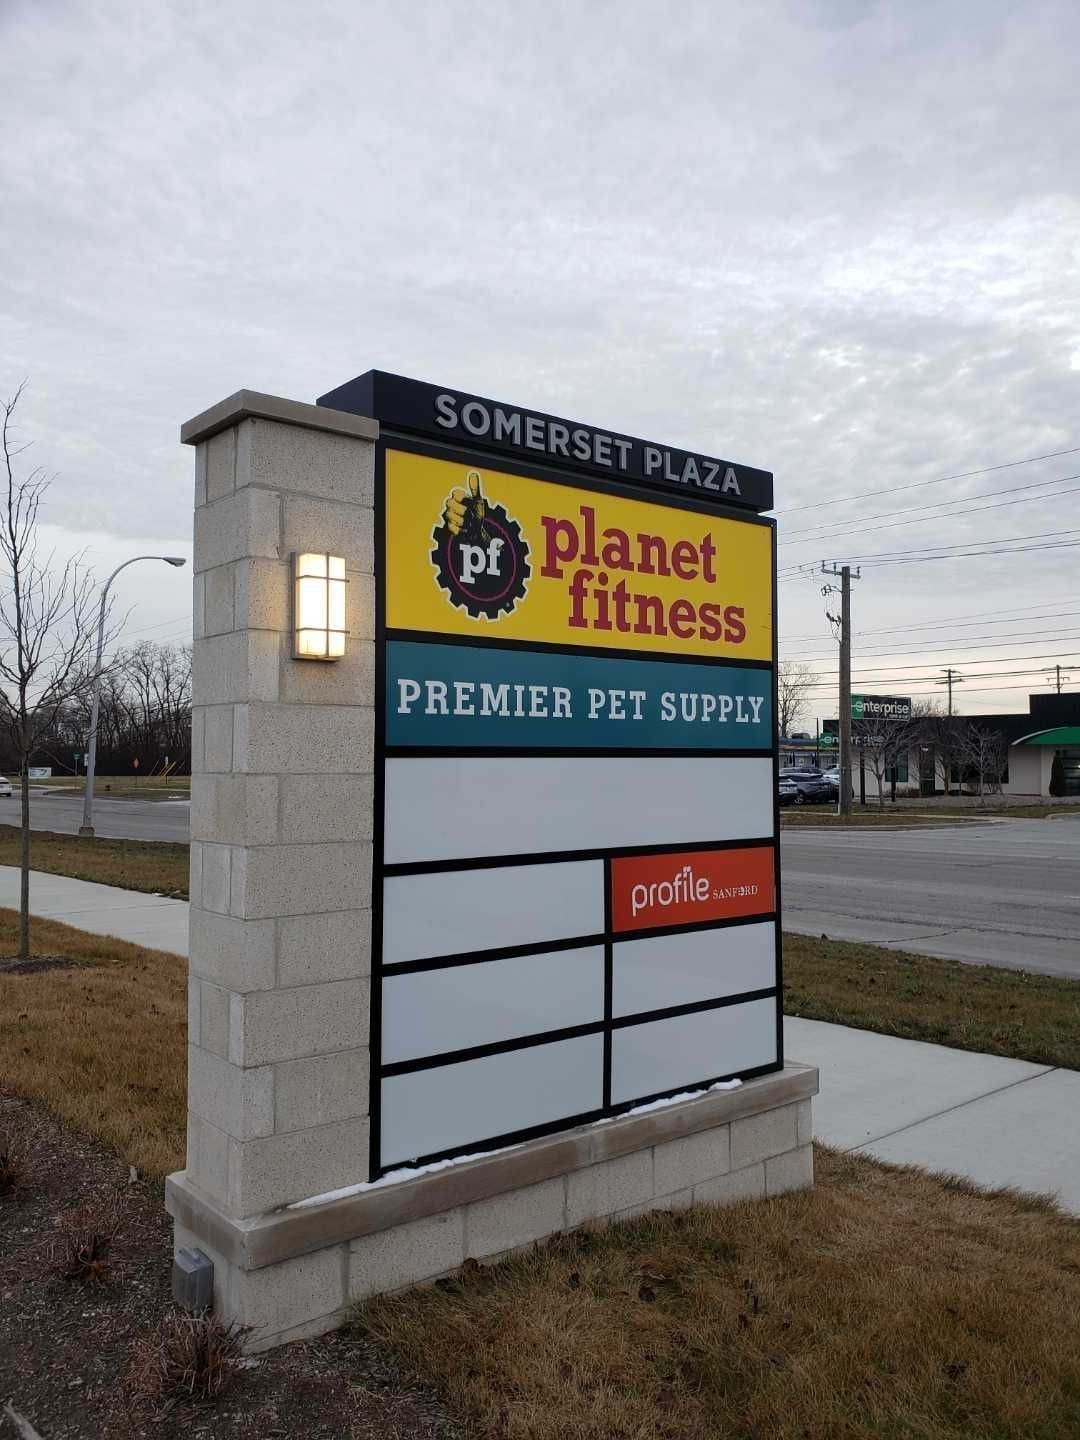 Somerset Plaza Monument Sign Premier Pet Supply tenant panels Profile Planet Fitness